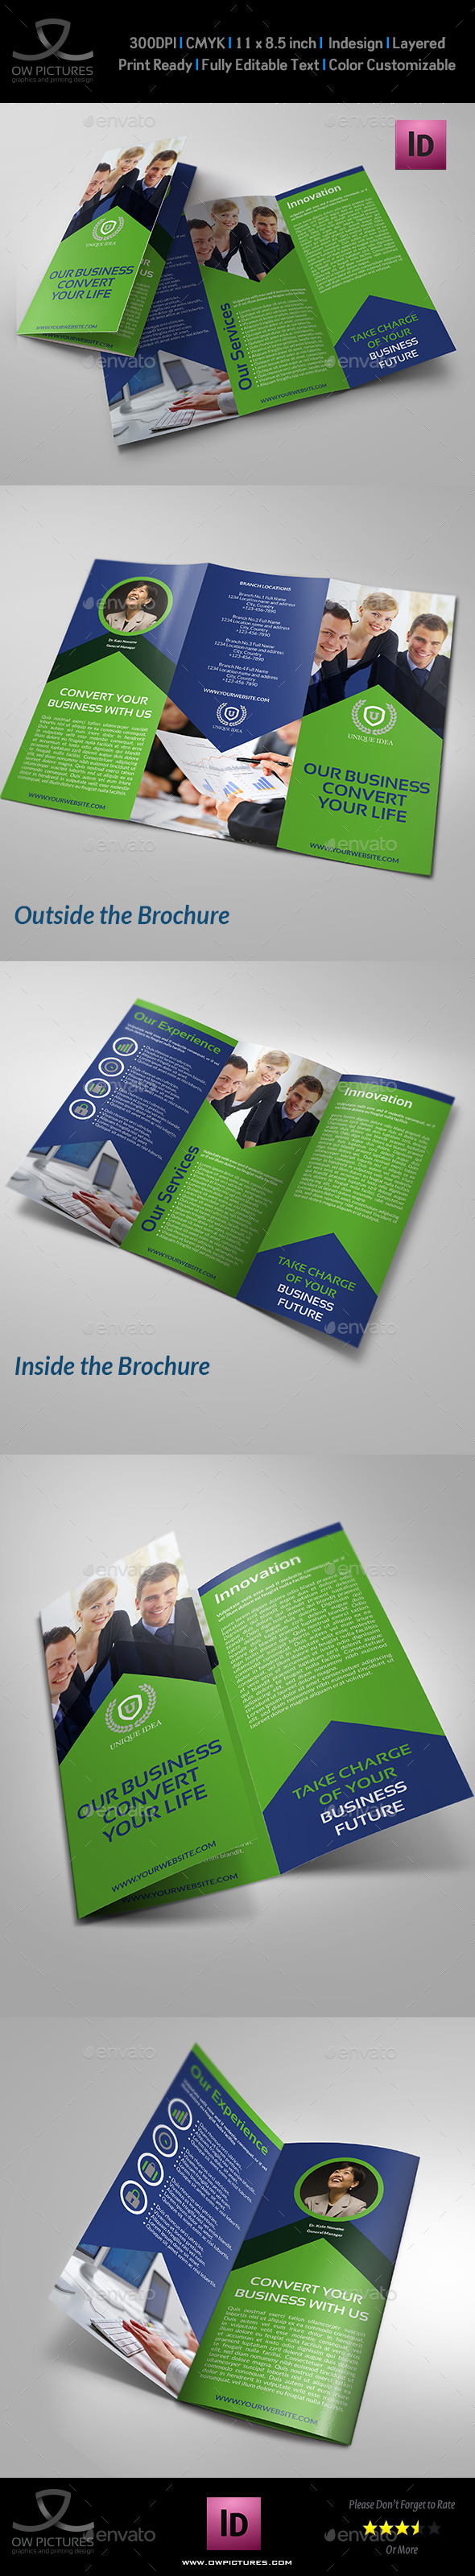 GraphicRiver Corporate Brochure Tri-Fold Template Vol.13 8968303